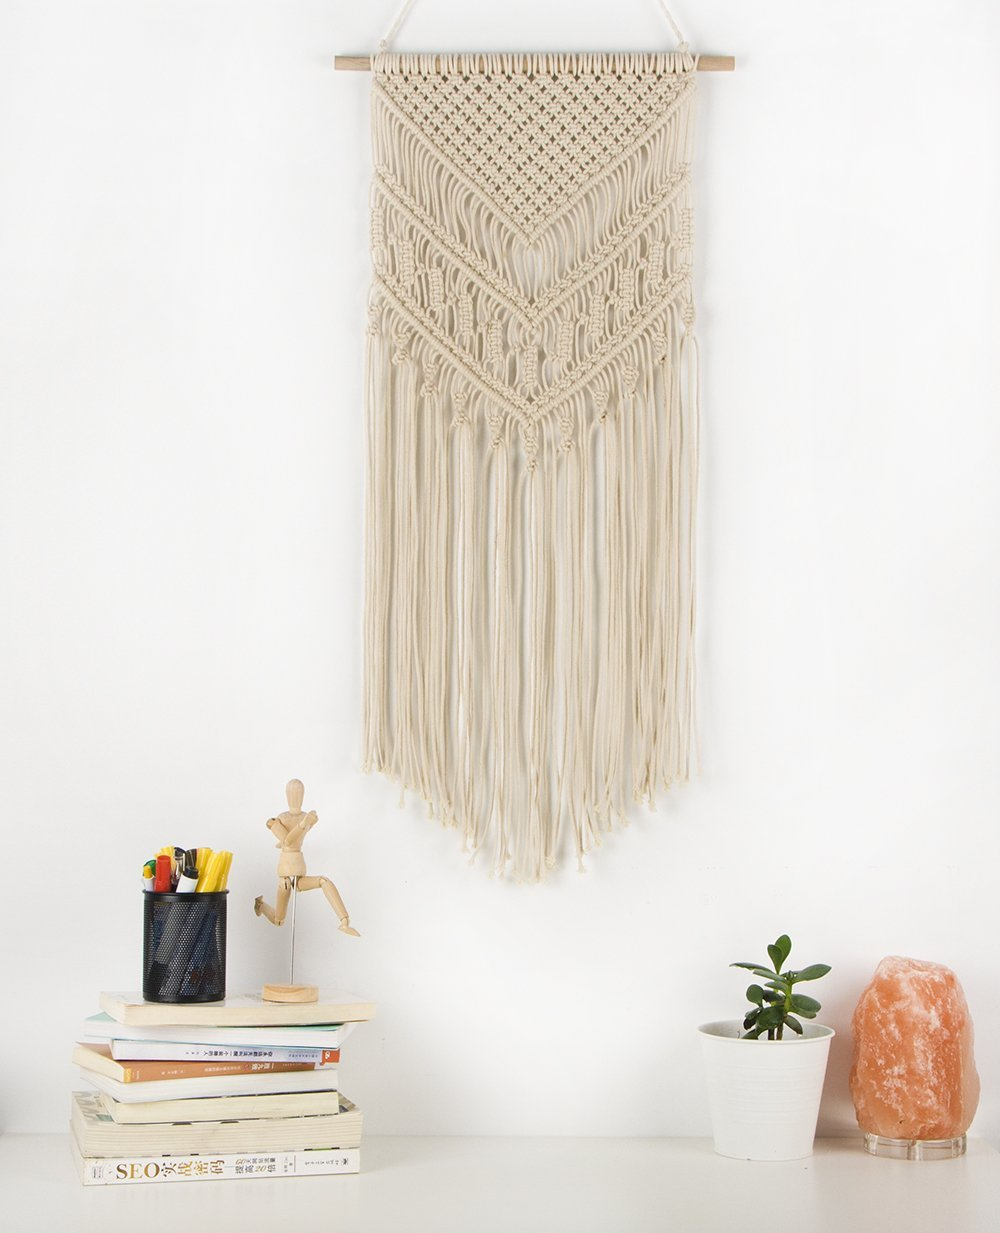 - This small macrame wall hanging could be at home among a grouping of other art or adding a touch of 1970's to a small space.